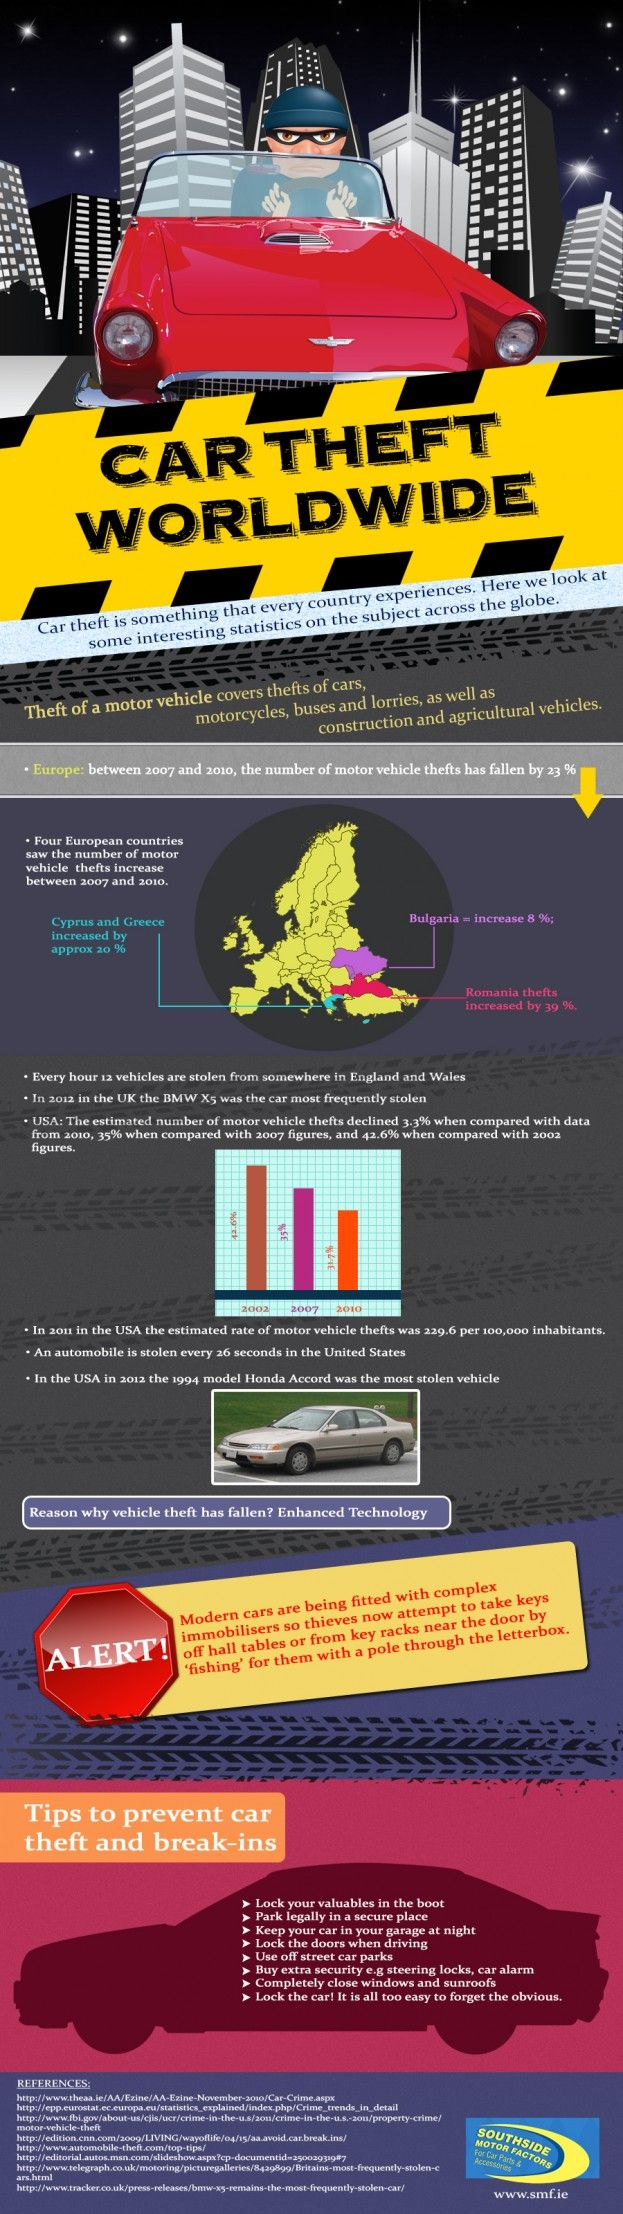 Car theft worldwide infographic